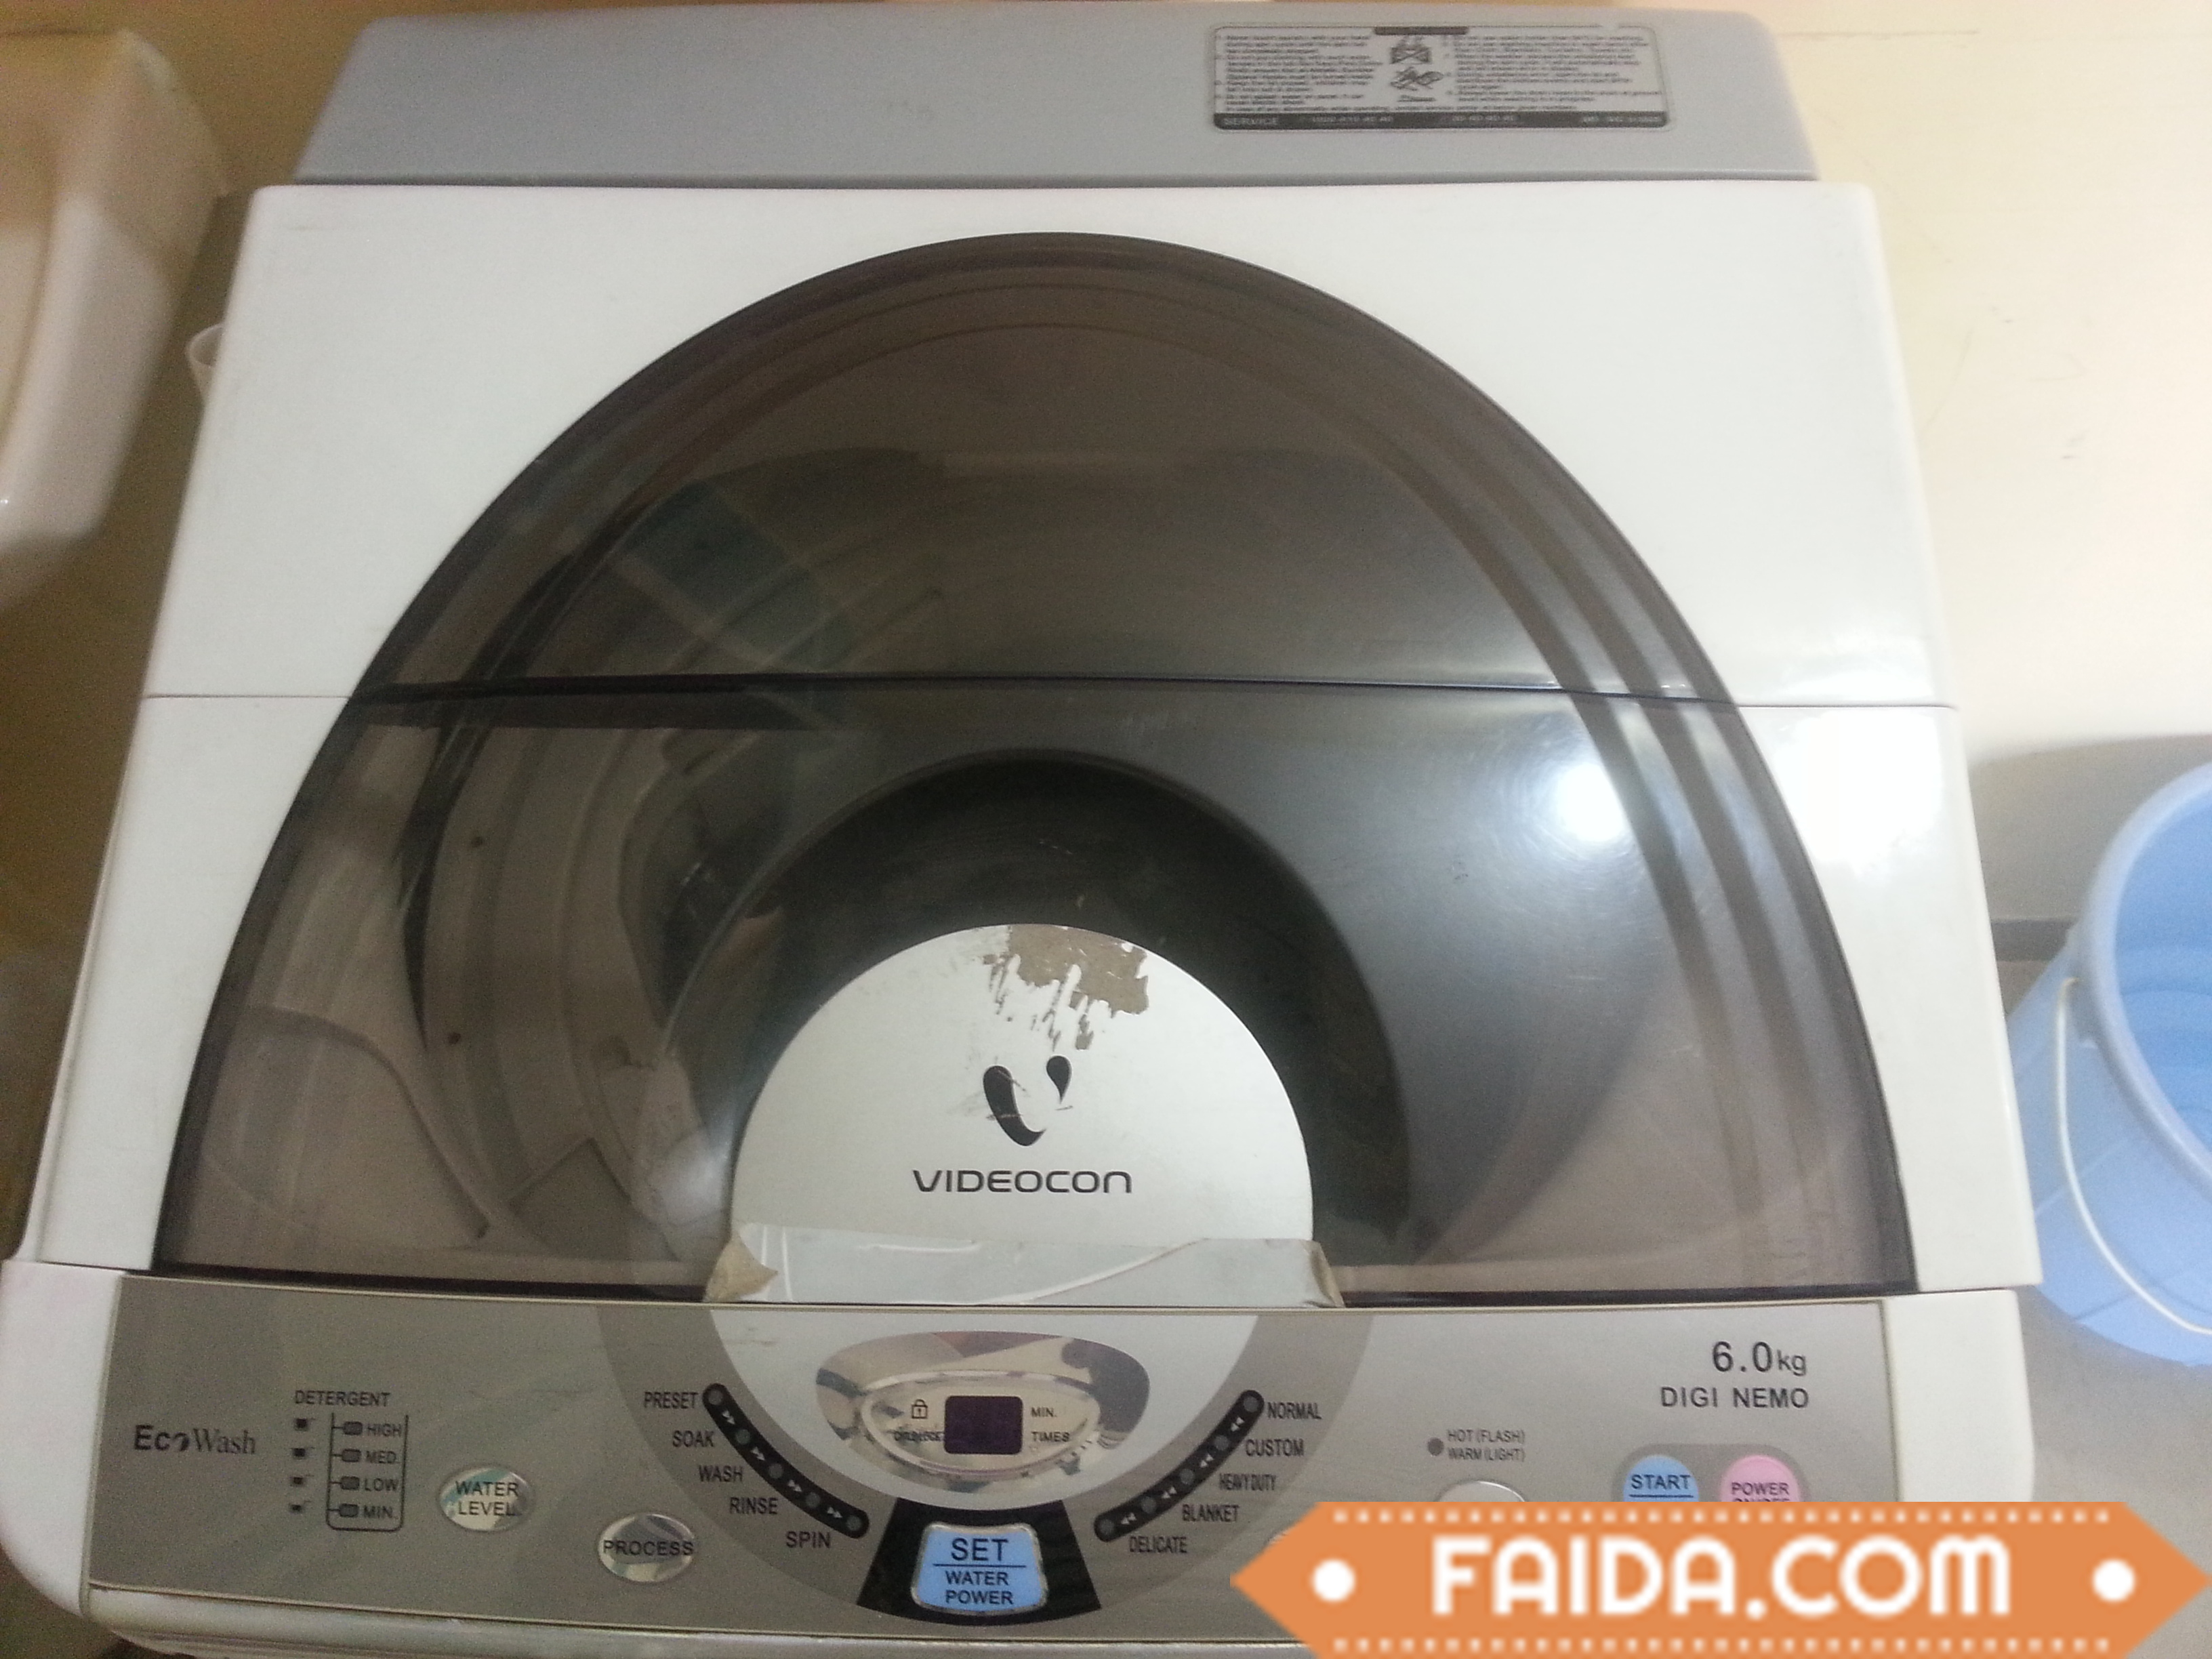 fully automatic washing machine Videocon 6kg top load